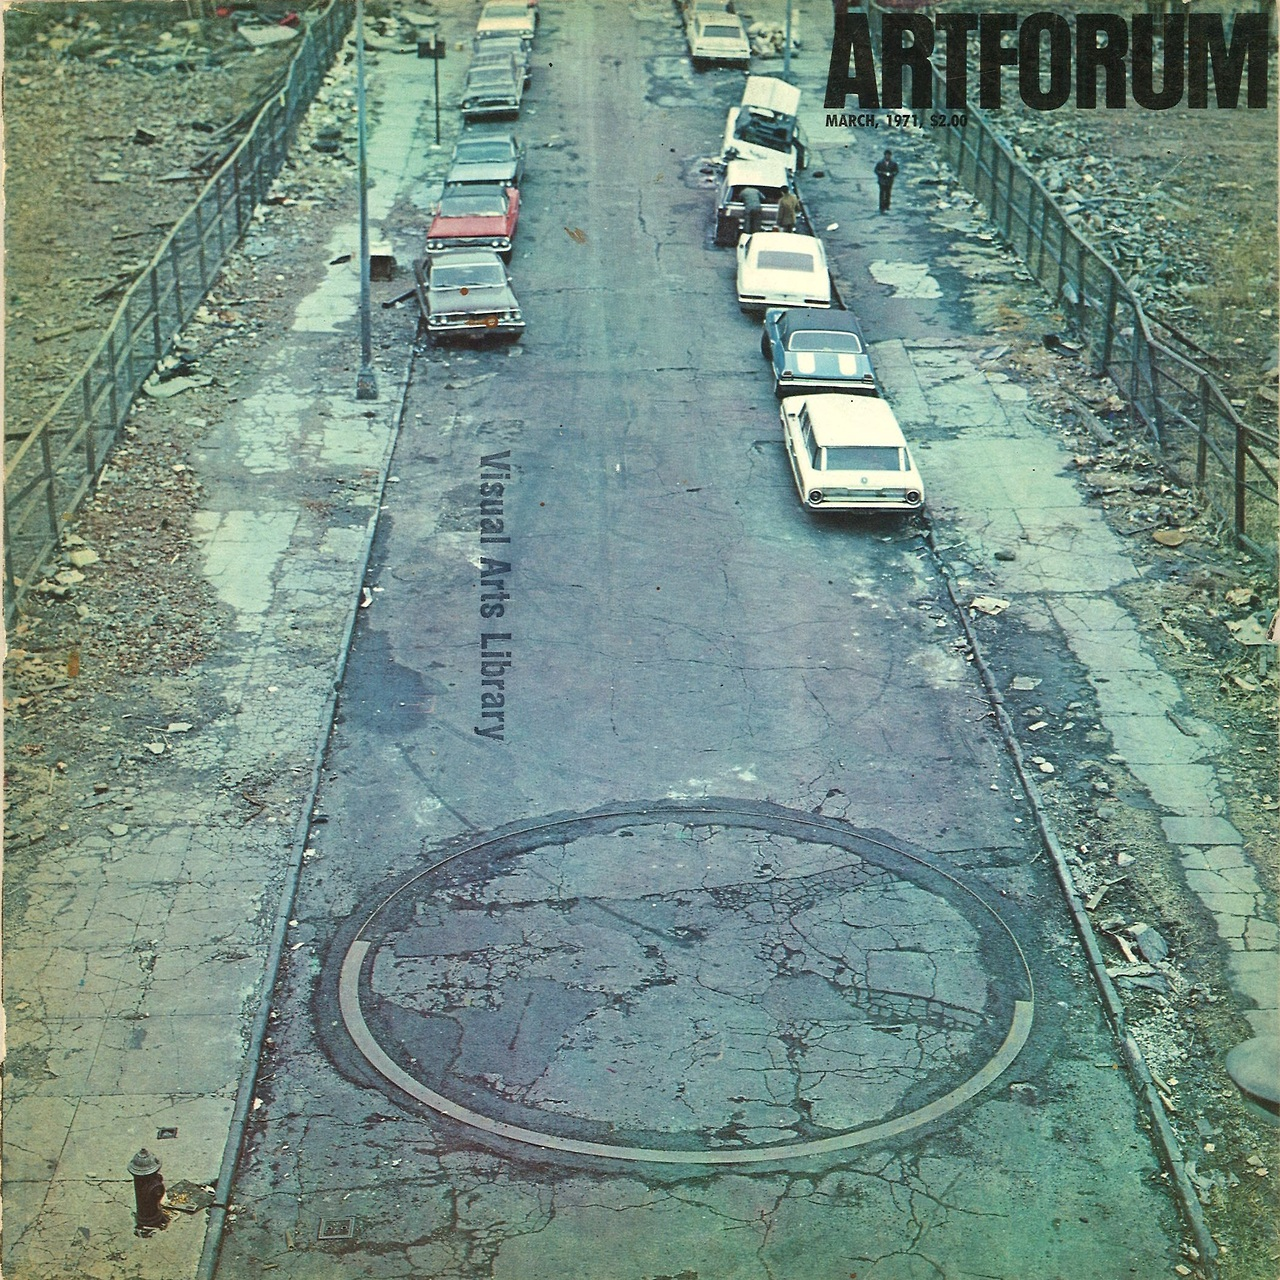 grupaok: Artforum, March 1971 — depicting Richard Serra, To Encircle Base Plate Hexagram, Right Angles Inverted, 1970, at 183rd Street and Webster Avenue, in the Bronx Whoa. Never knew this existed…